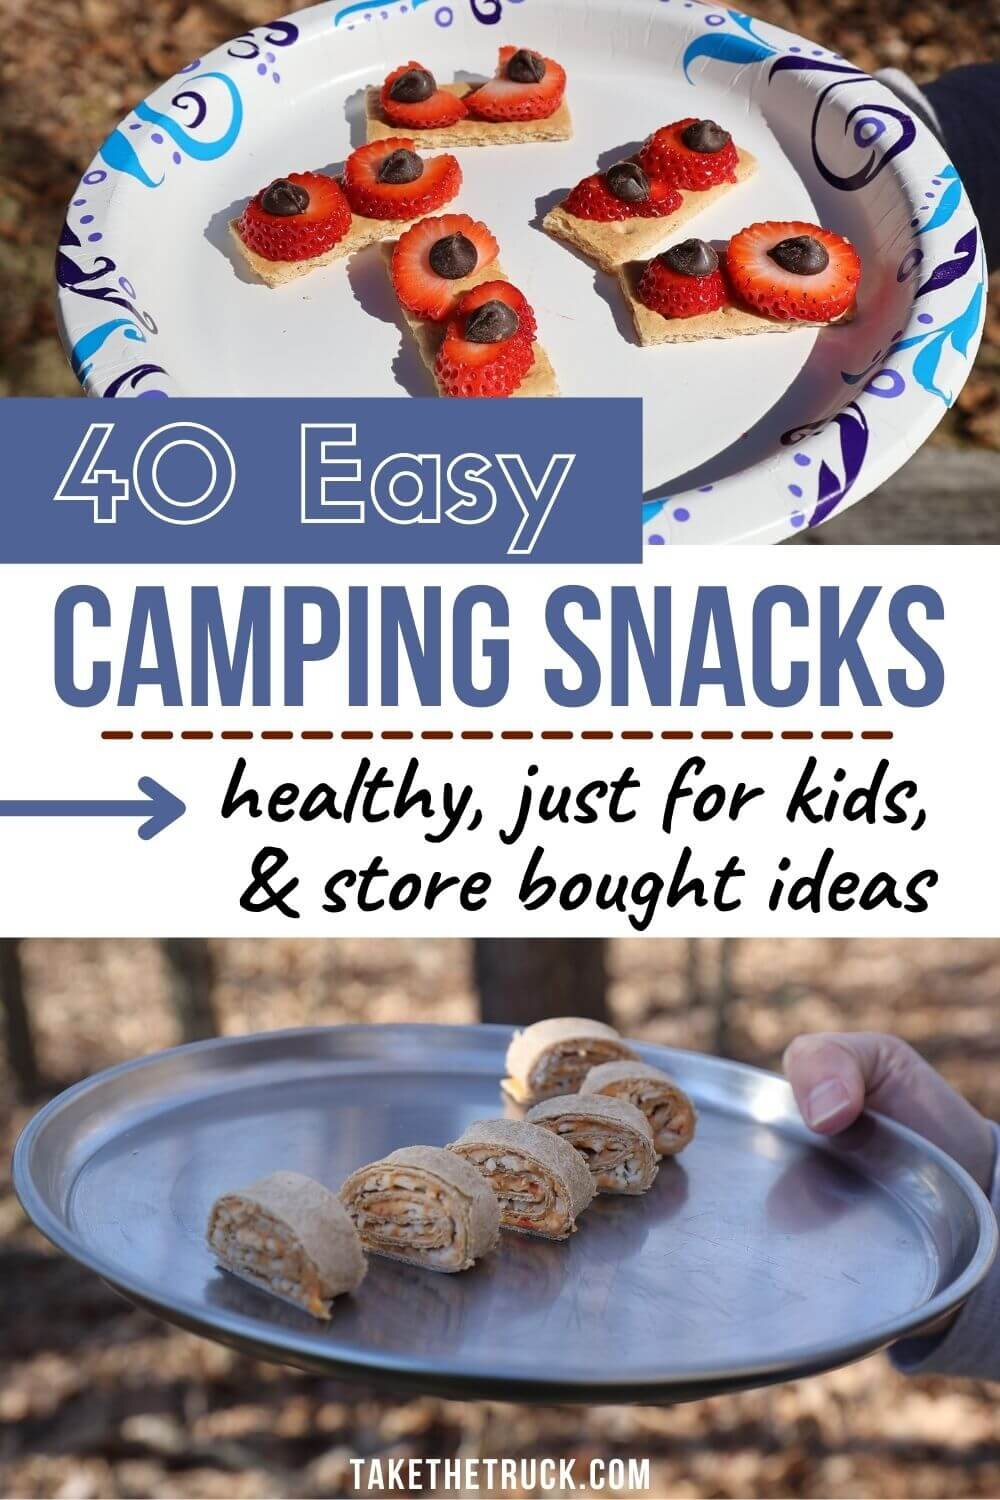 Over 30 easy camping snacks divided into: camping snacks to buy, simple camping snacks for kids, and healthy camping snacks for adults and kids. These are all simple camping snack ideas!